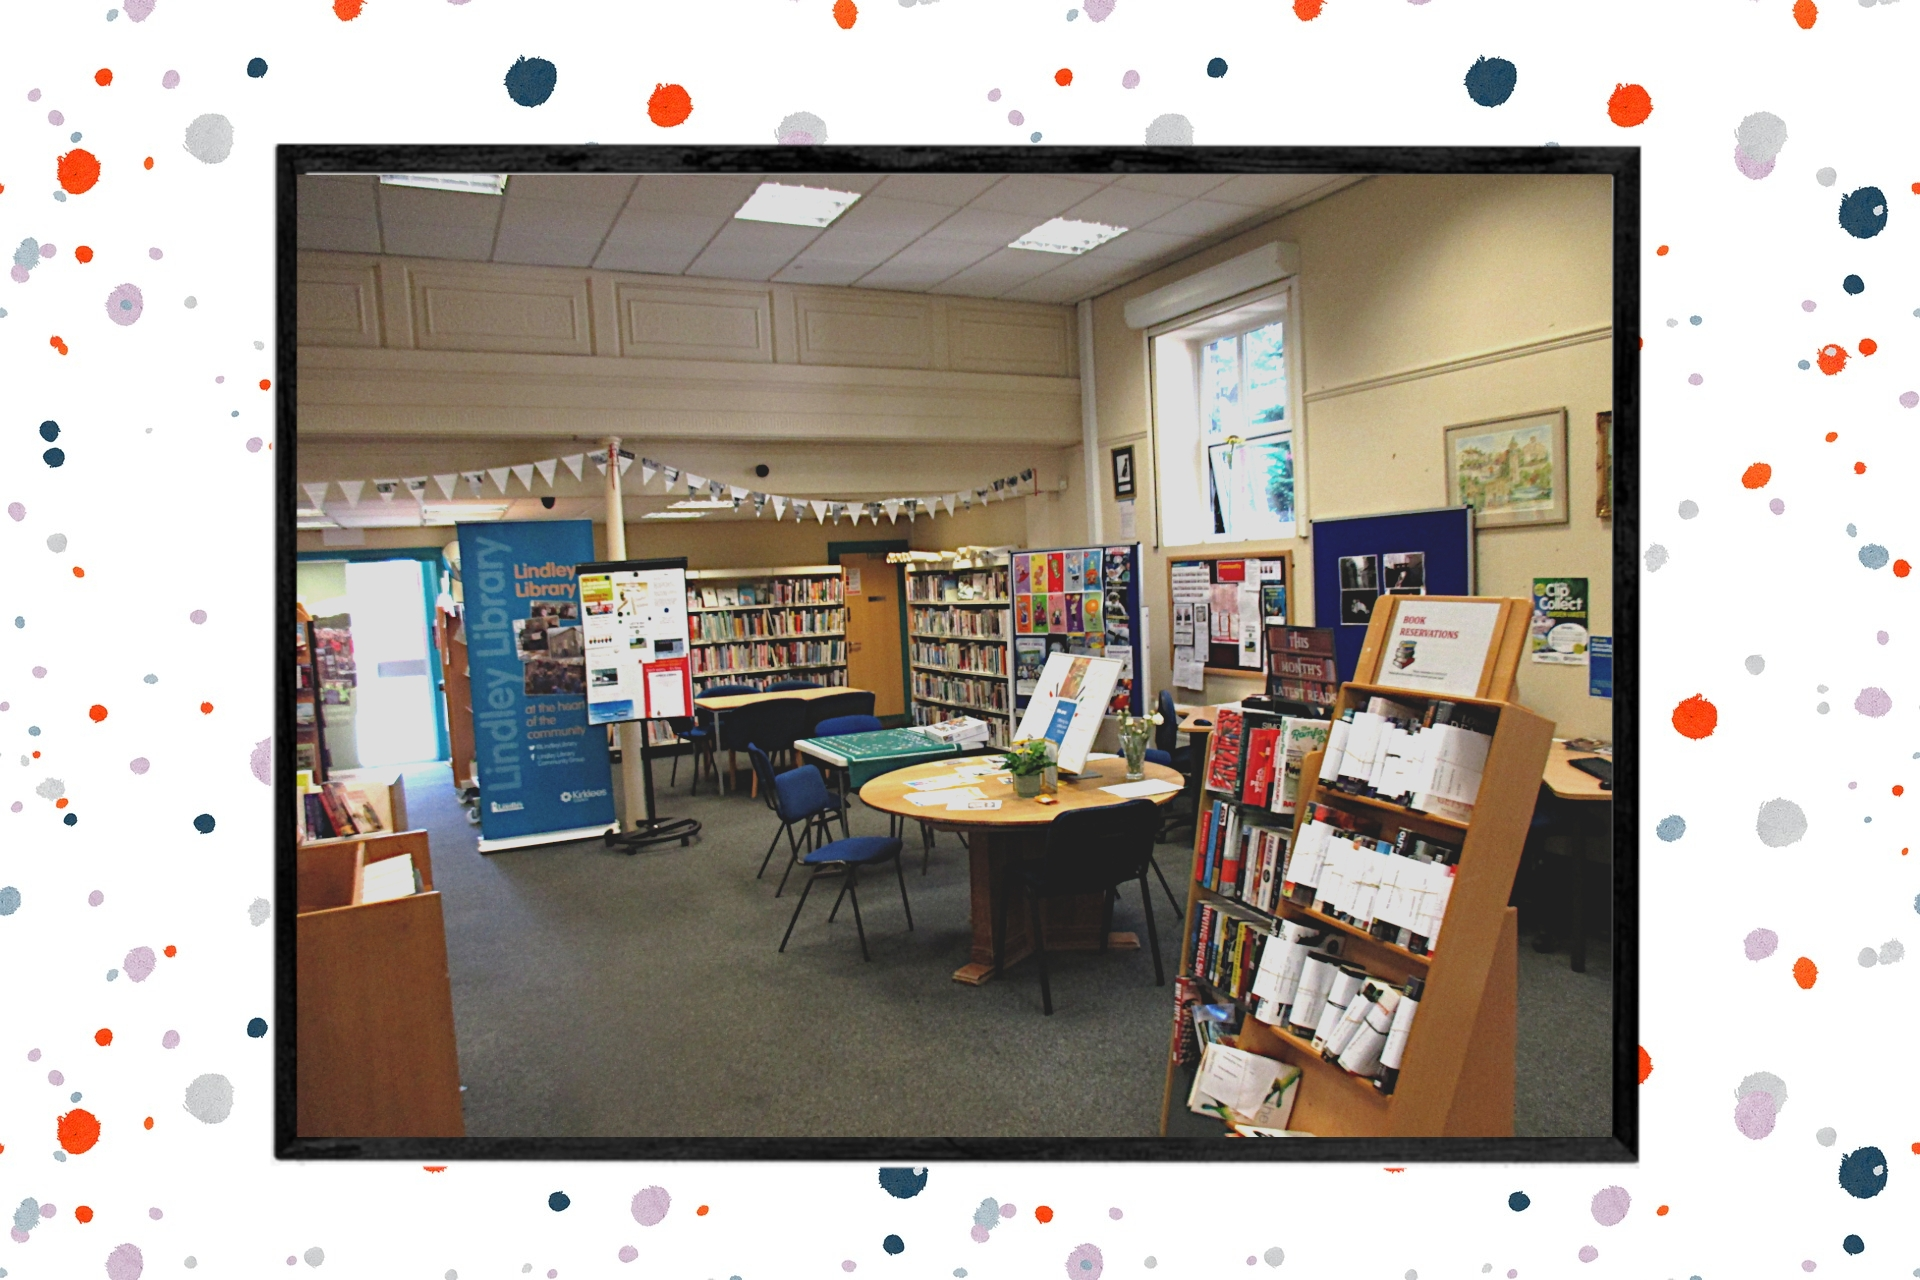 LoveReading Library of the Month #12: Lindley Library